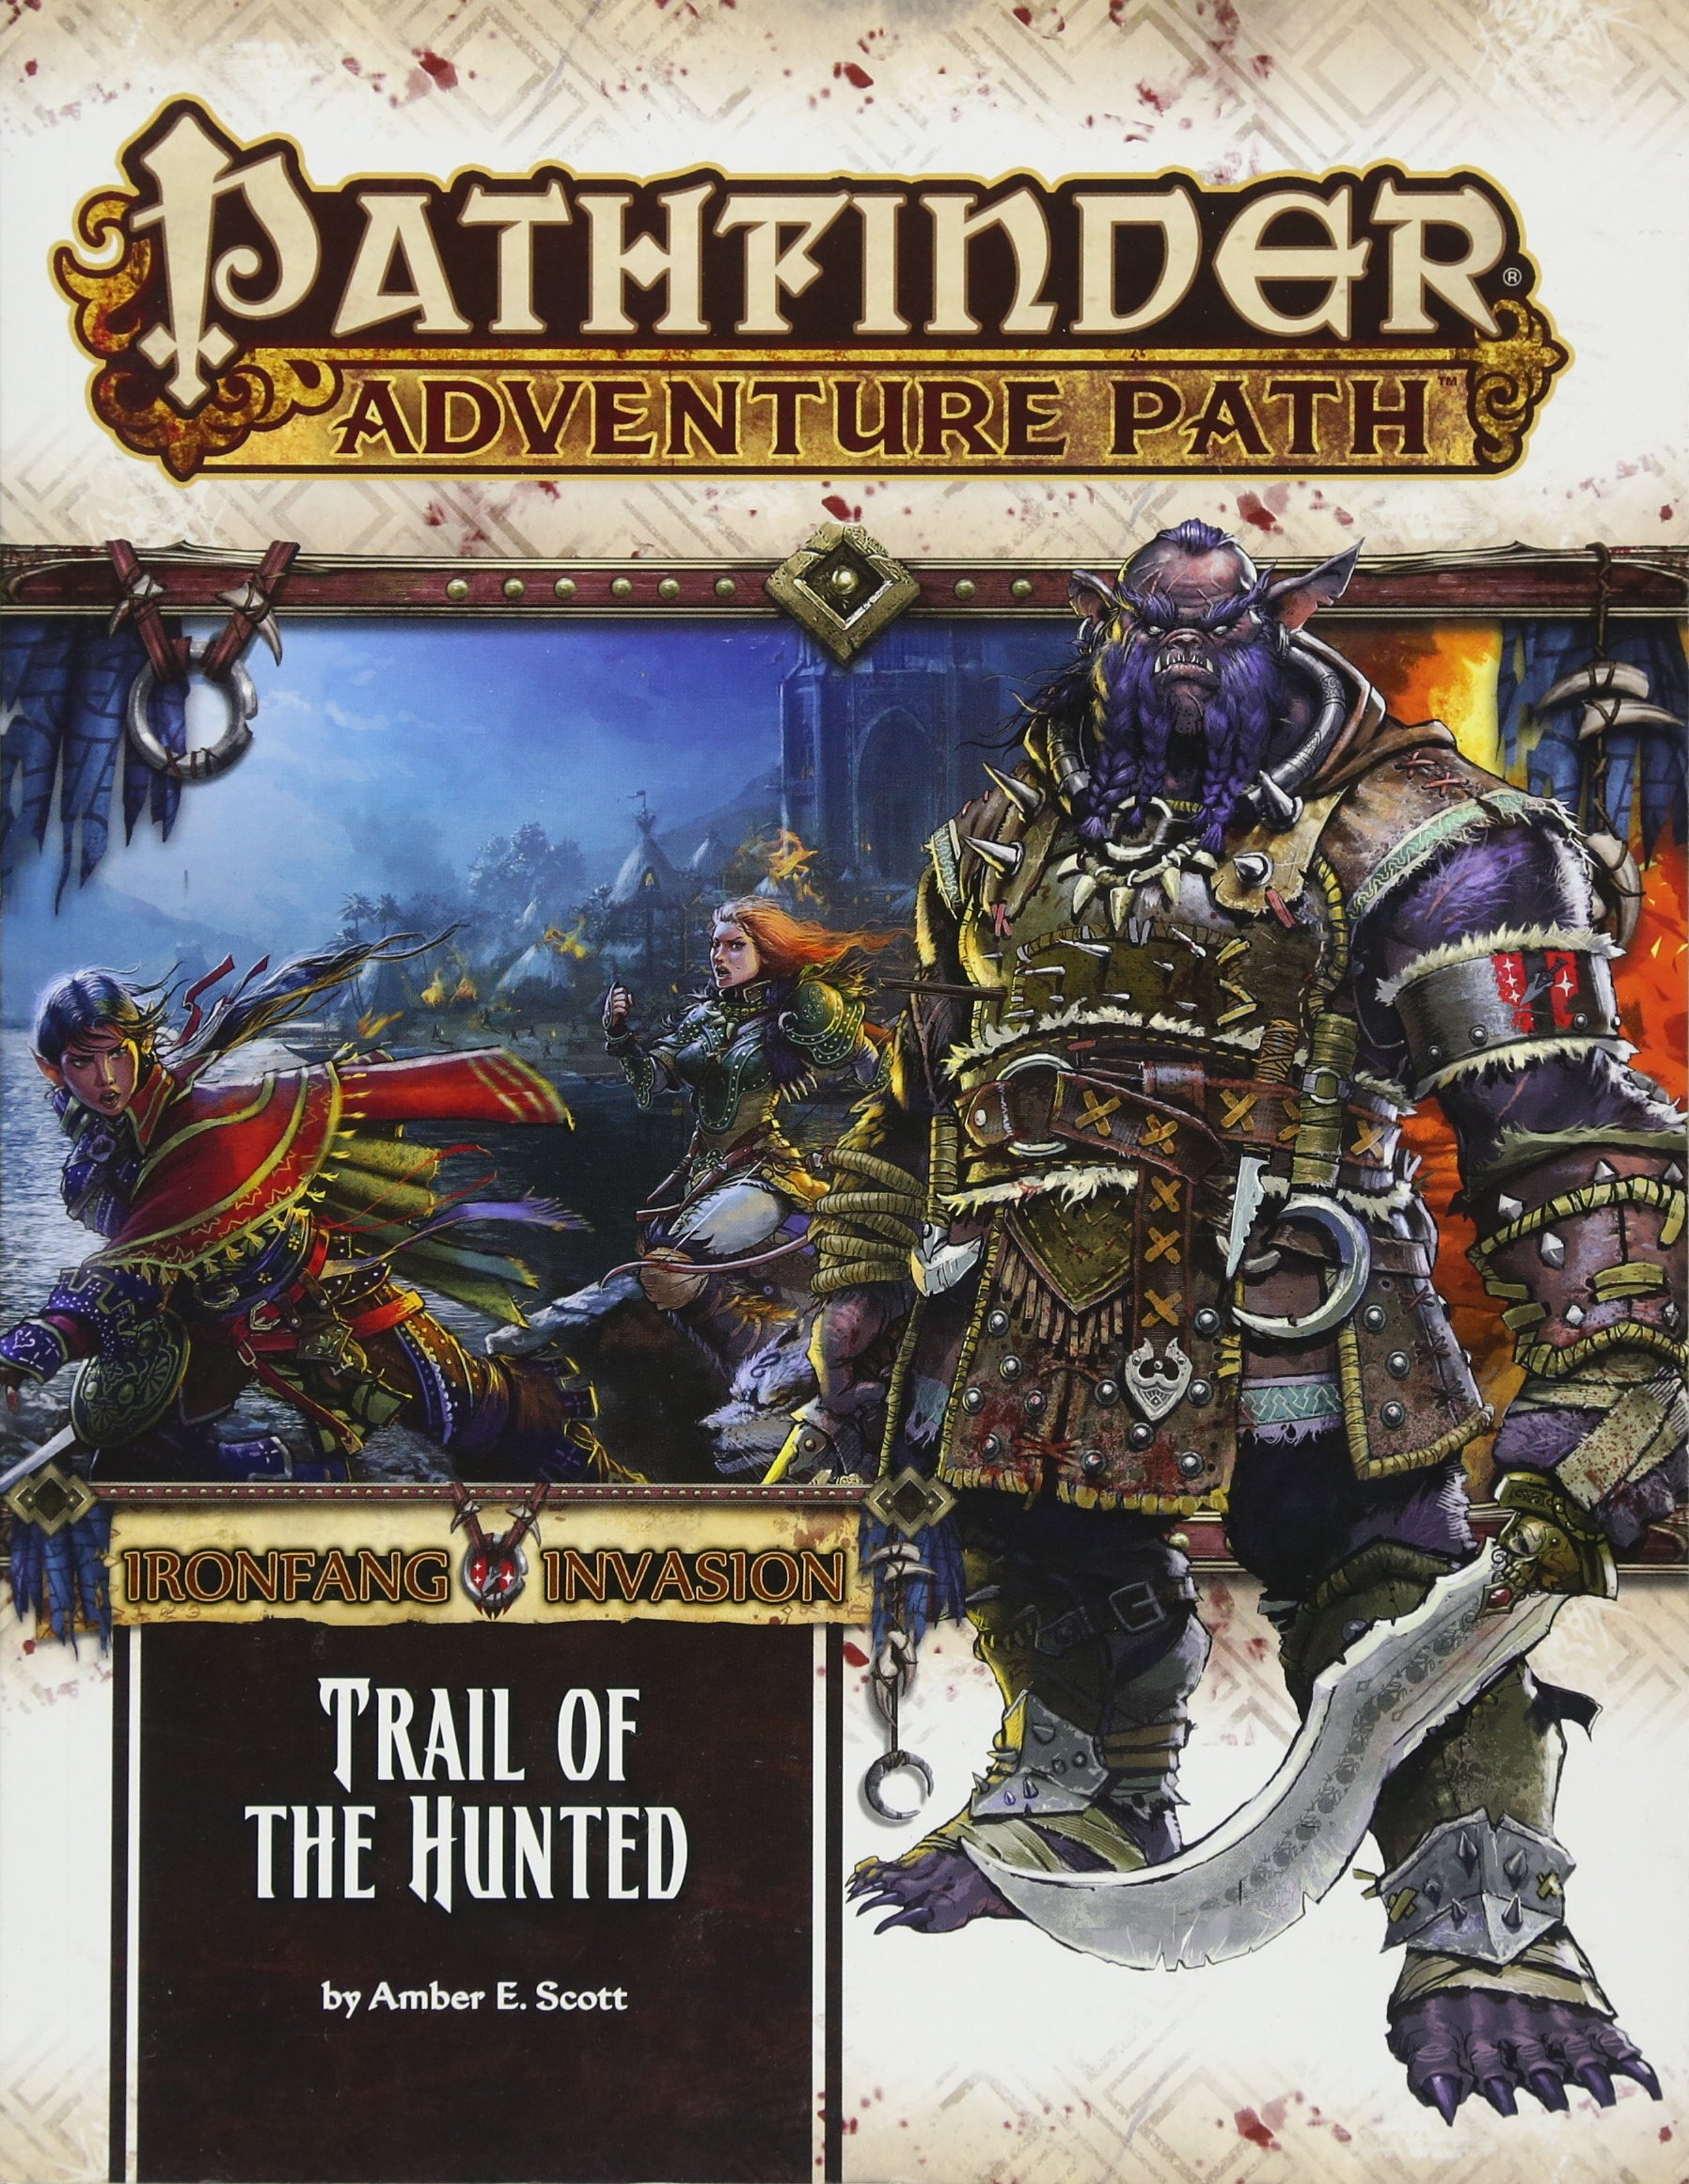 Read Online Pathfinder Adventure Path: Ironfang Invasion Part 1 of 6-Trail of the Hunted ebook